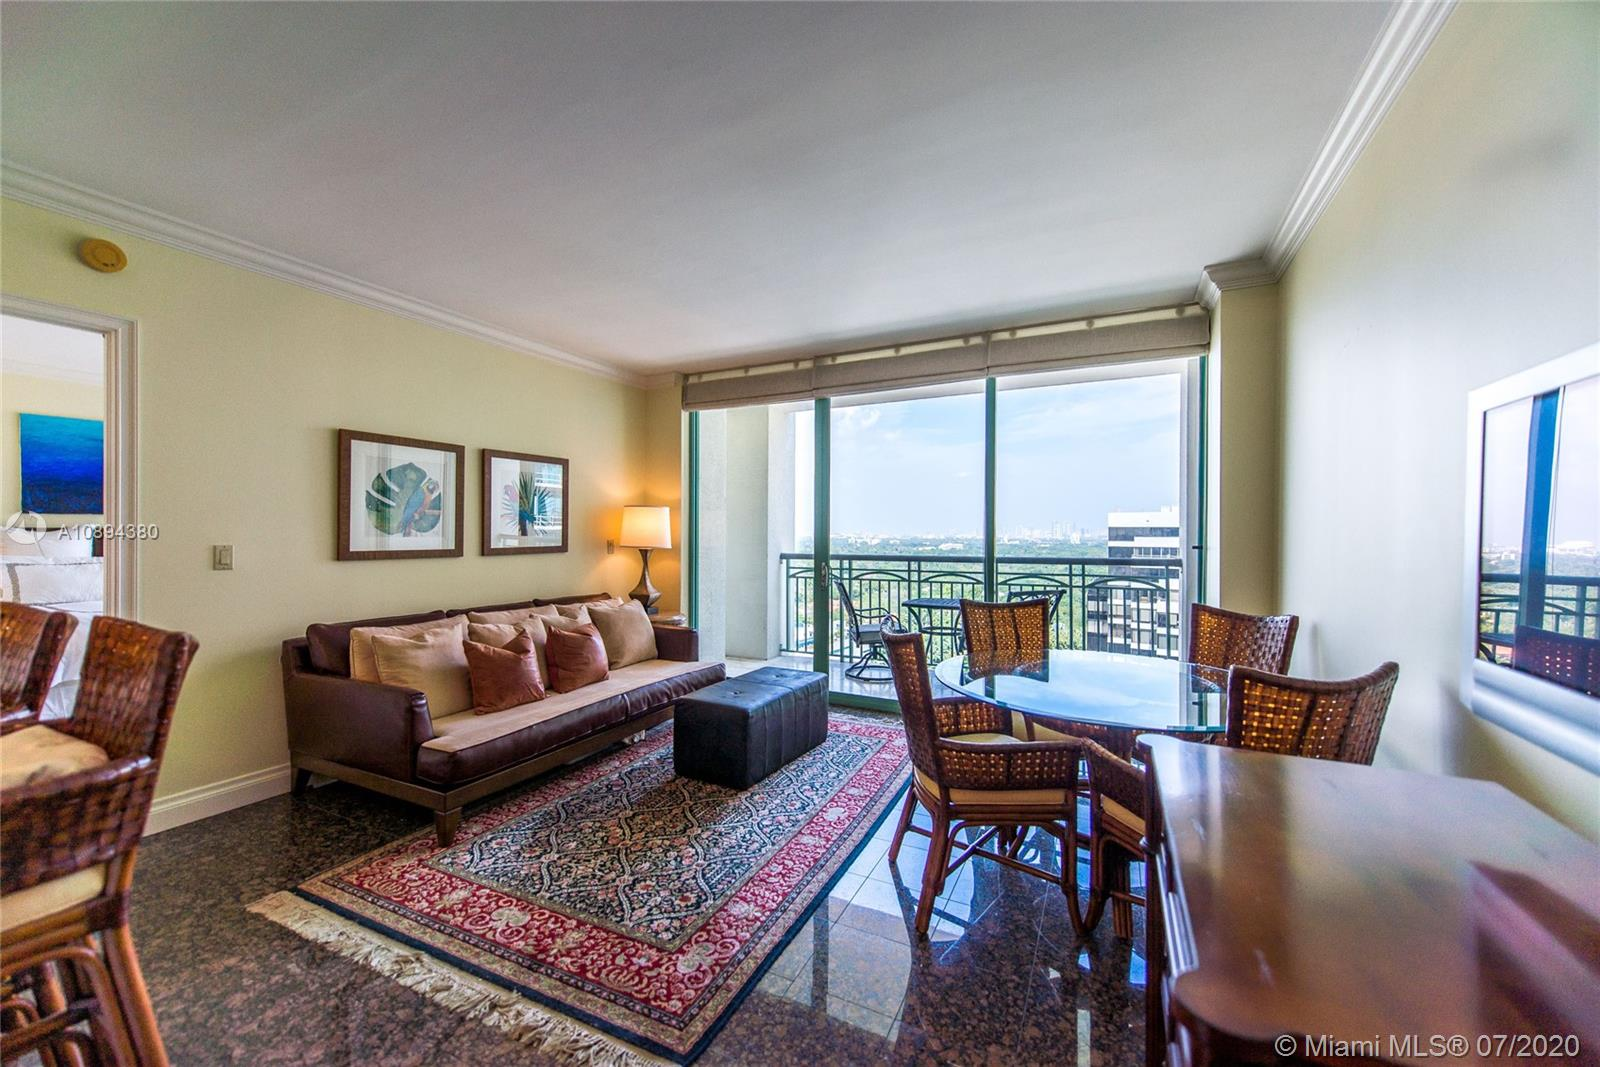 """Best pricing in the building for a 1BR/1.5BA and ready to sell today with beautiful new tile floors in Master Bedroom. Rarely-available unit in the """"08 line"""" with downtown Miami and north Grove views. Granite countertops in kitchen. Stainless steel appliances. New washer/dryer and dishwasher. Expansive master bath with marble floors & counter, bidet and separate shower/bath. Two walk-in closets. Elegant powder room with Venetian plaster & custom mirrors. Assigned parking space on upper level, or use hotel valet for your convenience. Enjoy all Hotel amenities including room service, Isabelle's Restaurant, The Commodore bar & lounge, concierge, spa, fitness center and pool. Private and secure Residences entry. Unit is vacant and easy to show. SELLER FINANCING AVAILABLE."""